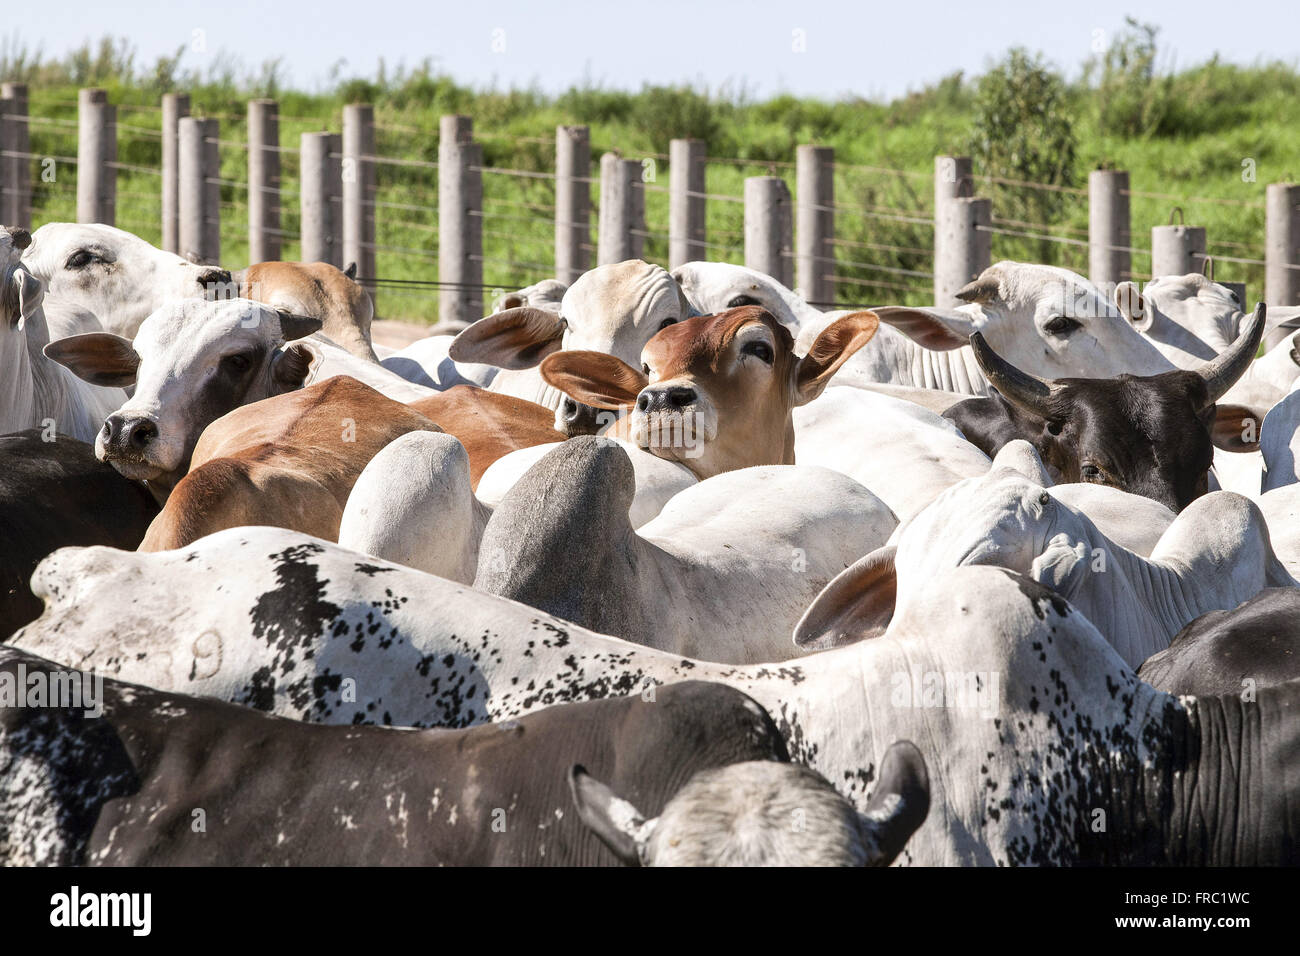 Livestock mestizo confined to rural property - Stock Image